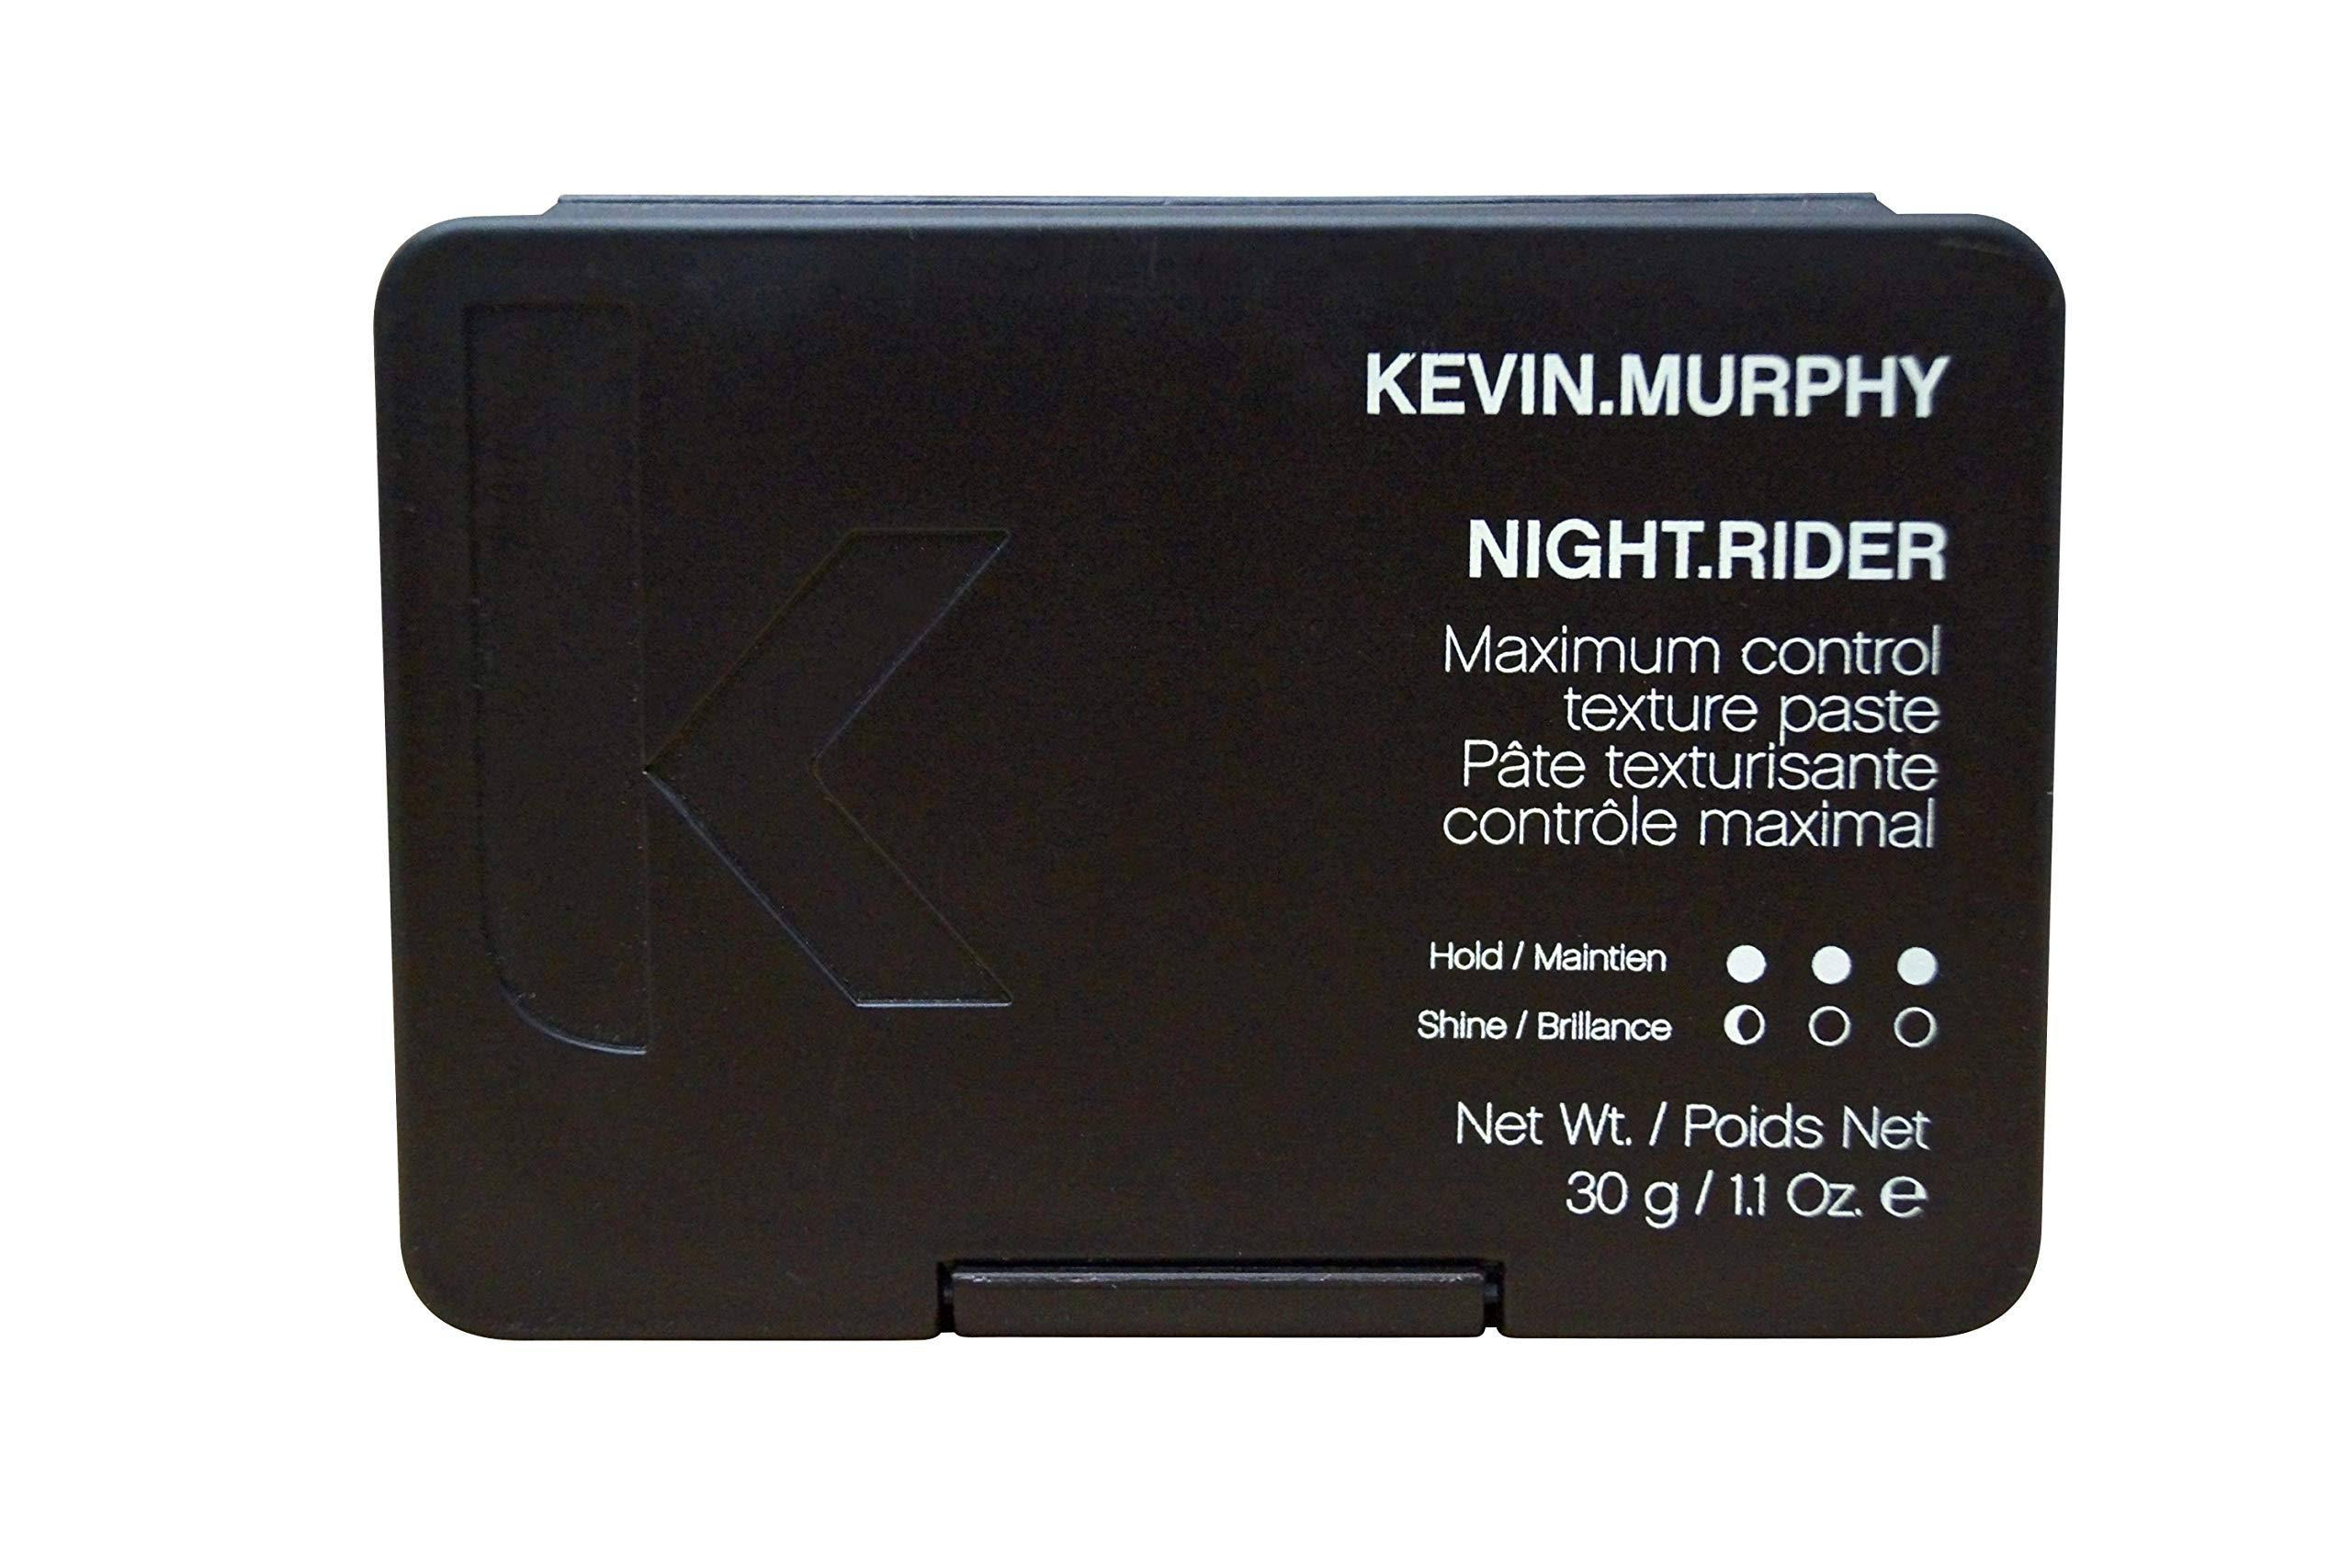 Kevin Murphy Night Rider Texture Paste - 30g